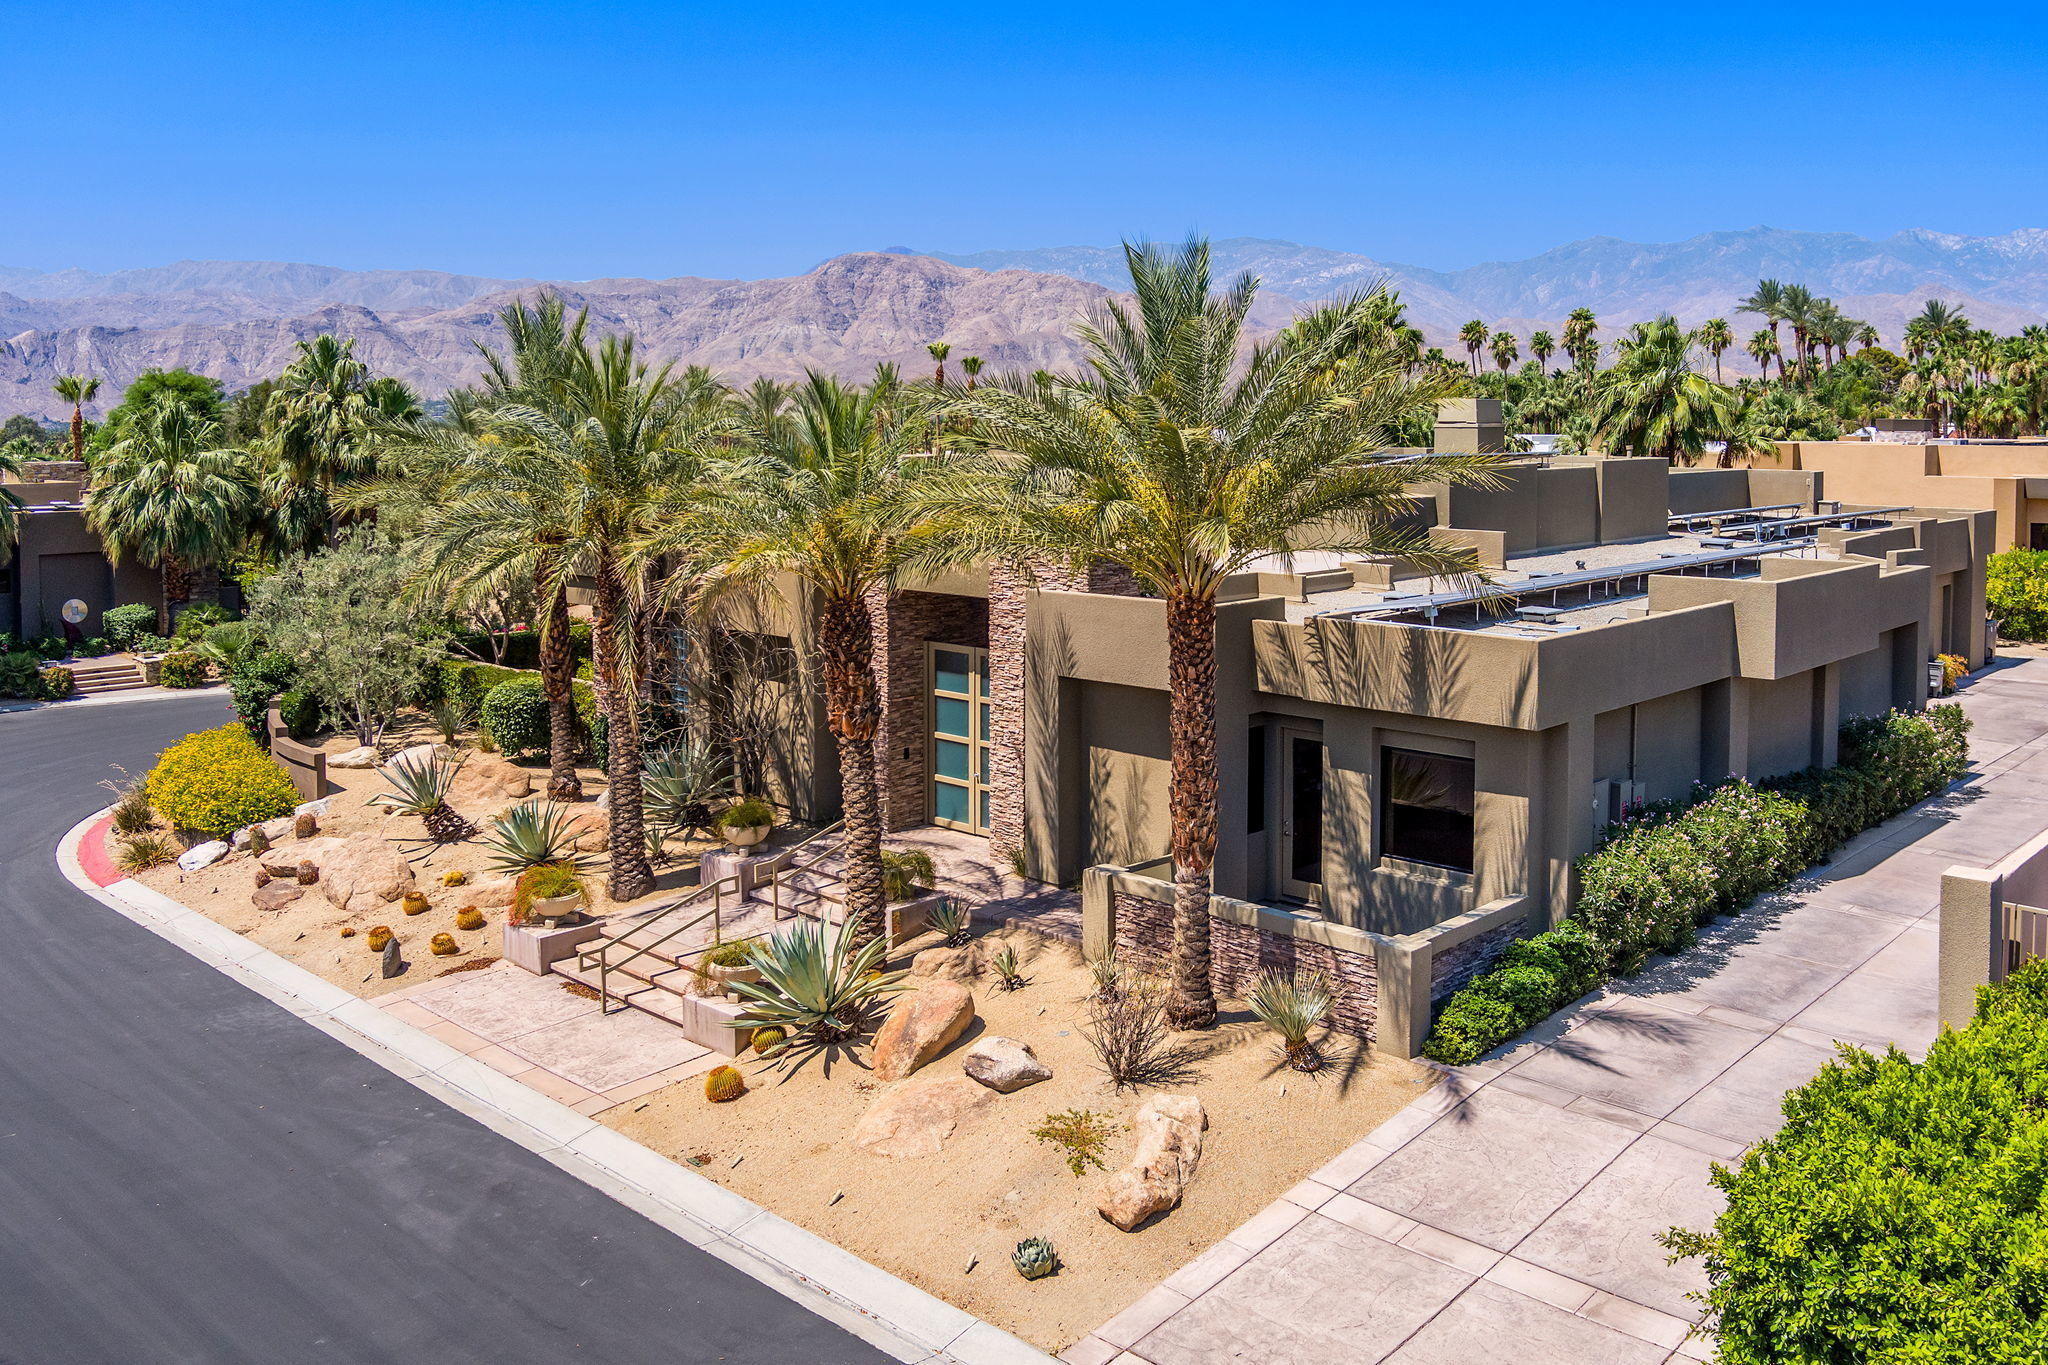 Stunning,180 degree mountain views, handsome, contemporary home has floor to ceiling Fleetwood doors and windows, spanning across entire length of house filling  rooms with an abundance of natural light and dramatic mountain view backdrop.  Enjoy convenience of Motorized shades w/several black out shades as well. Large home, just shy of 5,000 sq.ft. with 4 bedrooms includes the Casita.  Separate entry from interior courtyard to casita w/builtins, bathroom, closet and kitchenette w/sub zero refrigerator w/ice maker & microwave.  Tall, Glass double door, electric entry to Elegant living room with travertine flooring, coffered ceilings, marble fireplace,& builtins looking at 49 ft. lap pool. Pristine and practical, this home runs on solar energy & panels that are owned. Dining room with built in cabinets and great room with open kitchen. Stainless steel Wolf range, Meile dishwasher, Sub Zero Refrigerator, granite counters and tons of cabinets, storage &  w/ walk in pantry. Master retreat w/fireplace & builtins, dual organized closets & baths. Wake up to sparkling pool, brilliant blue skies, and views of  magnificent mountains from your bedside. Three car garage w/ electricity for Tesla or any other electric car, buyer to verify.  Additional vacant parcel adjacent to home is for sale too. Ask Agent for details.